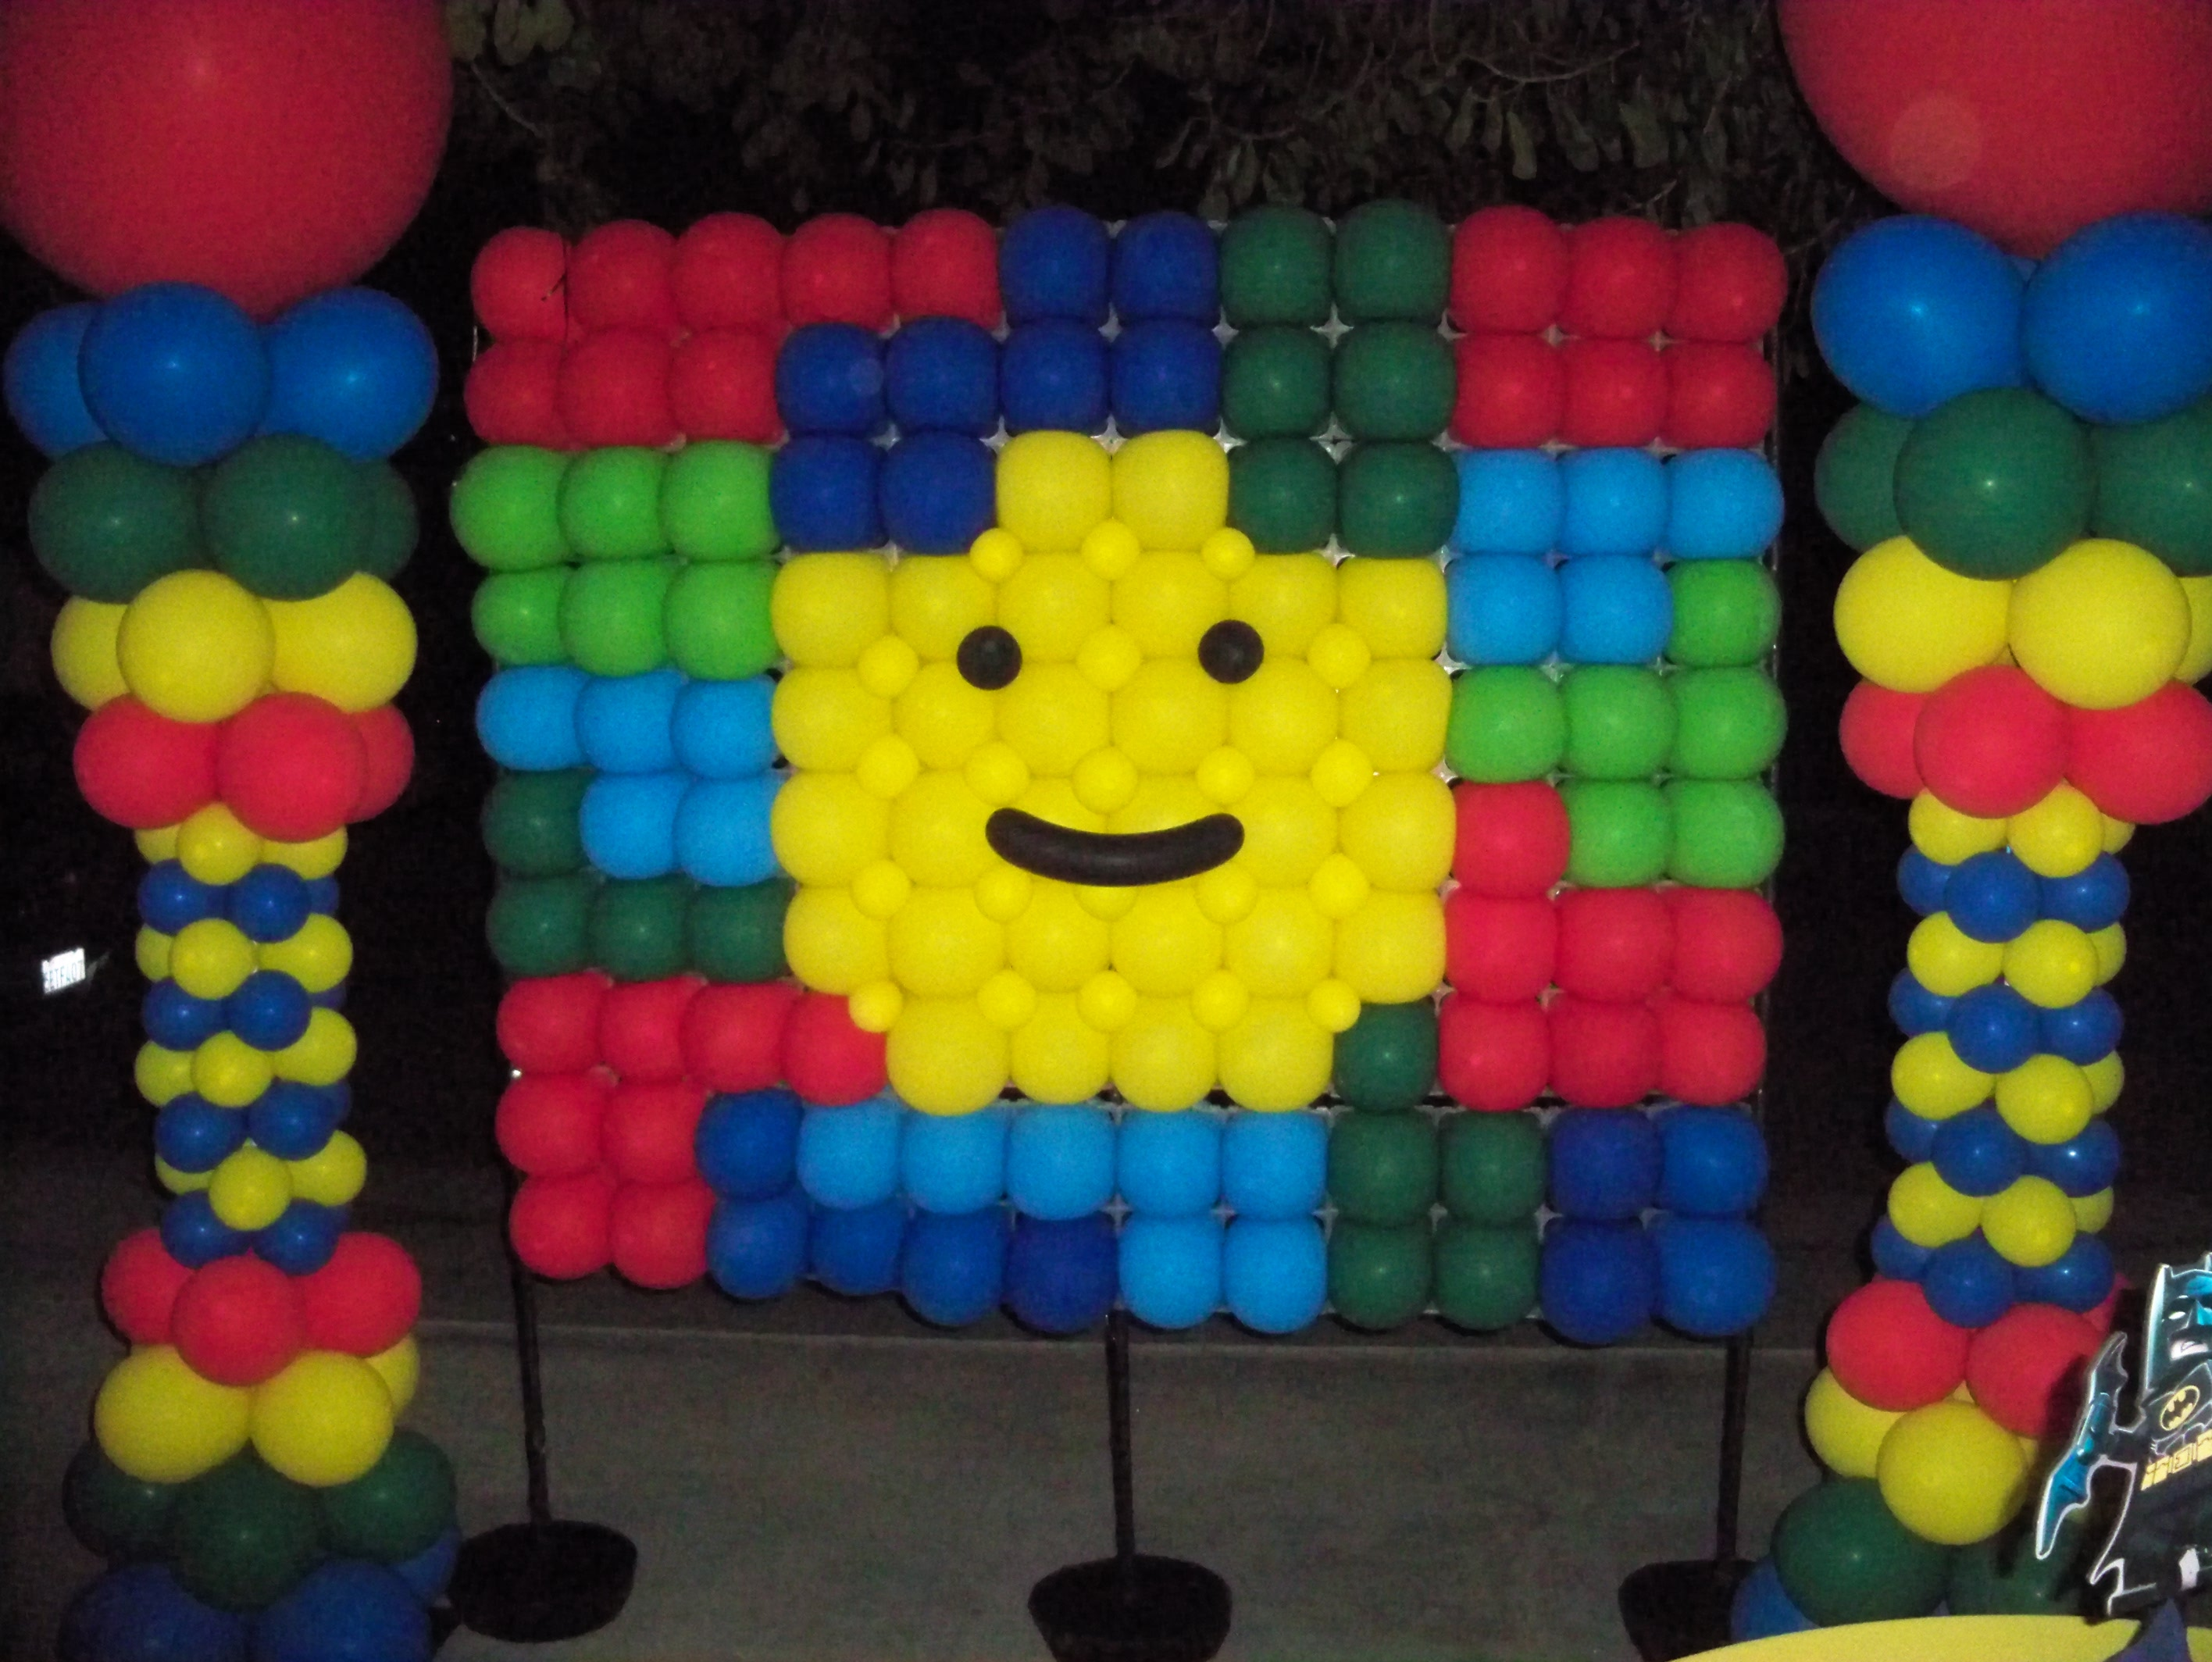 Balloon Lego Wall and Columns